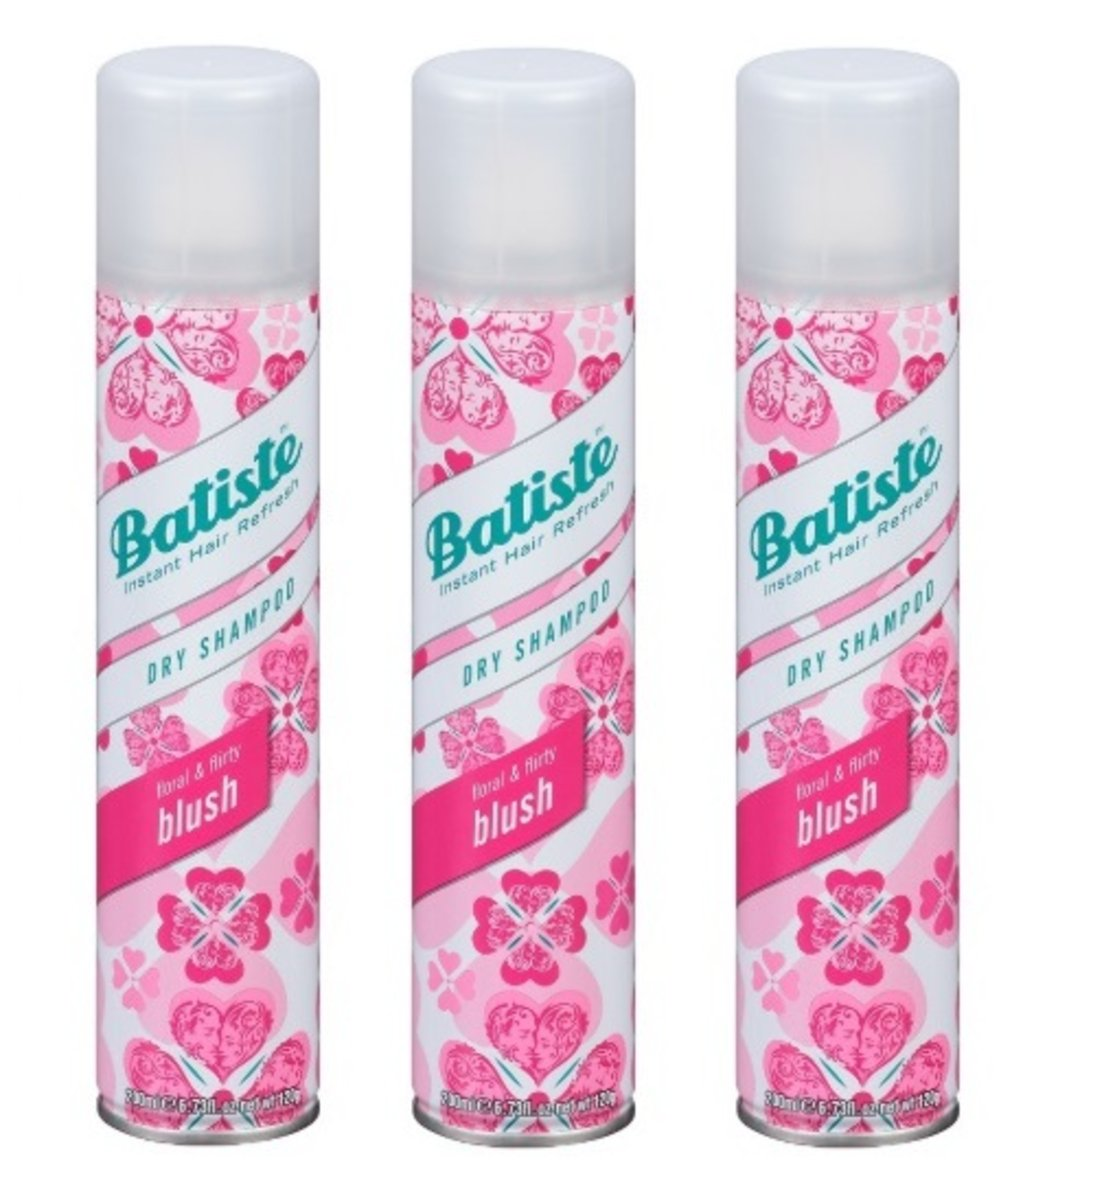 Batiste Shampoo 200ml Blush X 3 5010724527375 Hktvmall Dry 200 Ml